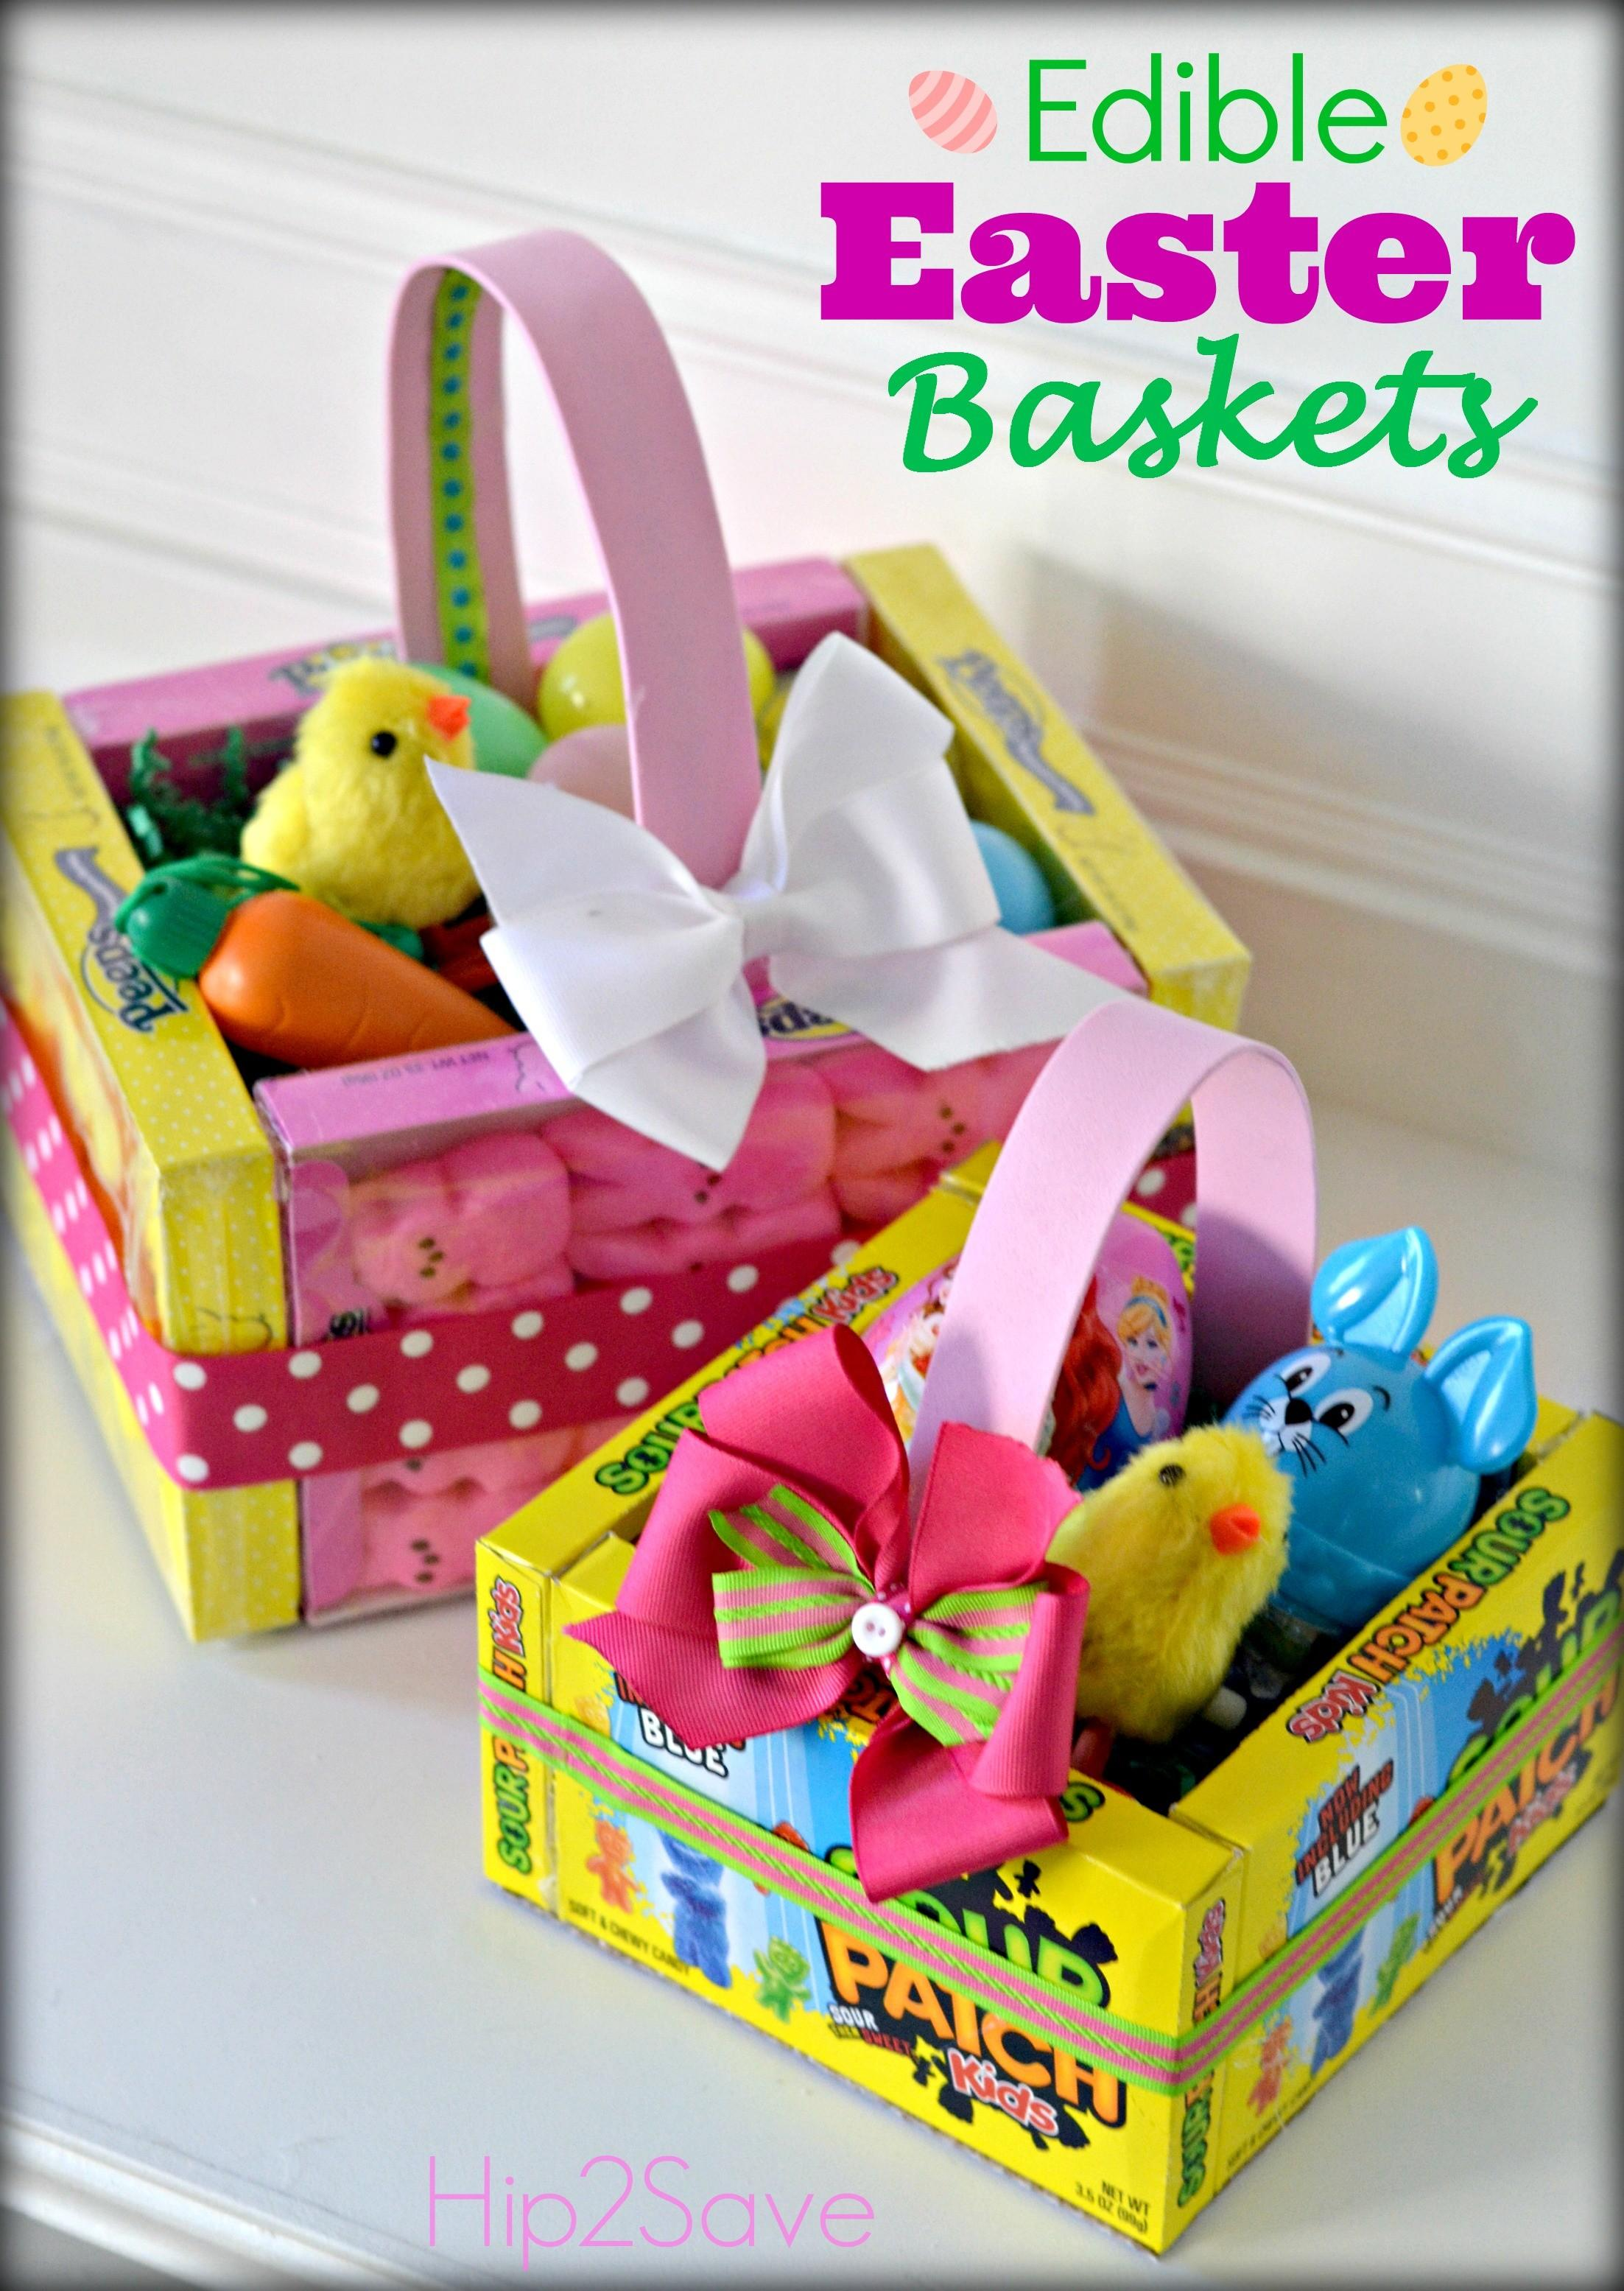 Edible Easter Baskets Easy Craft Hip2save